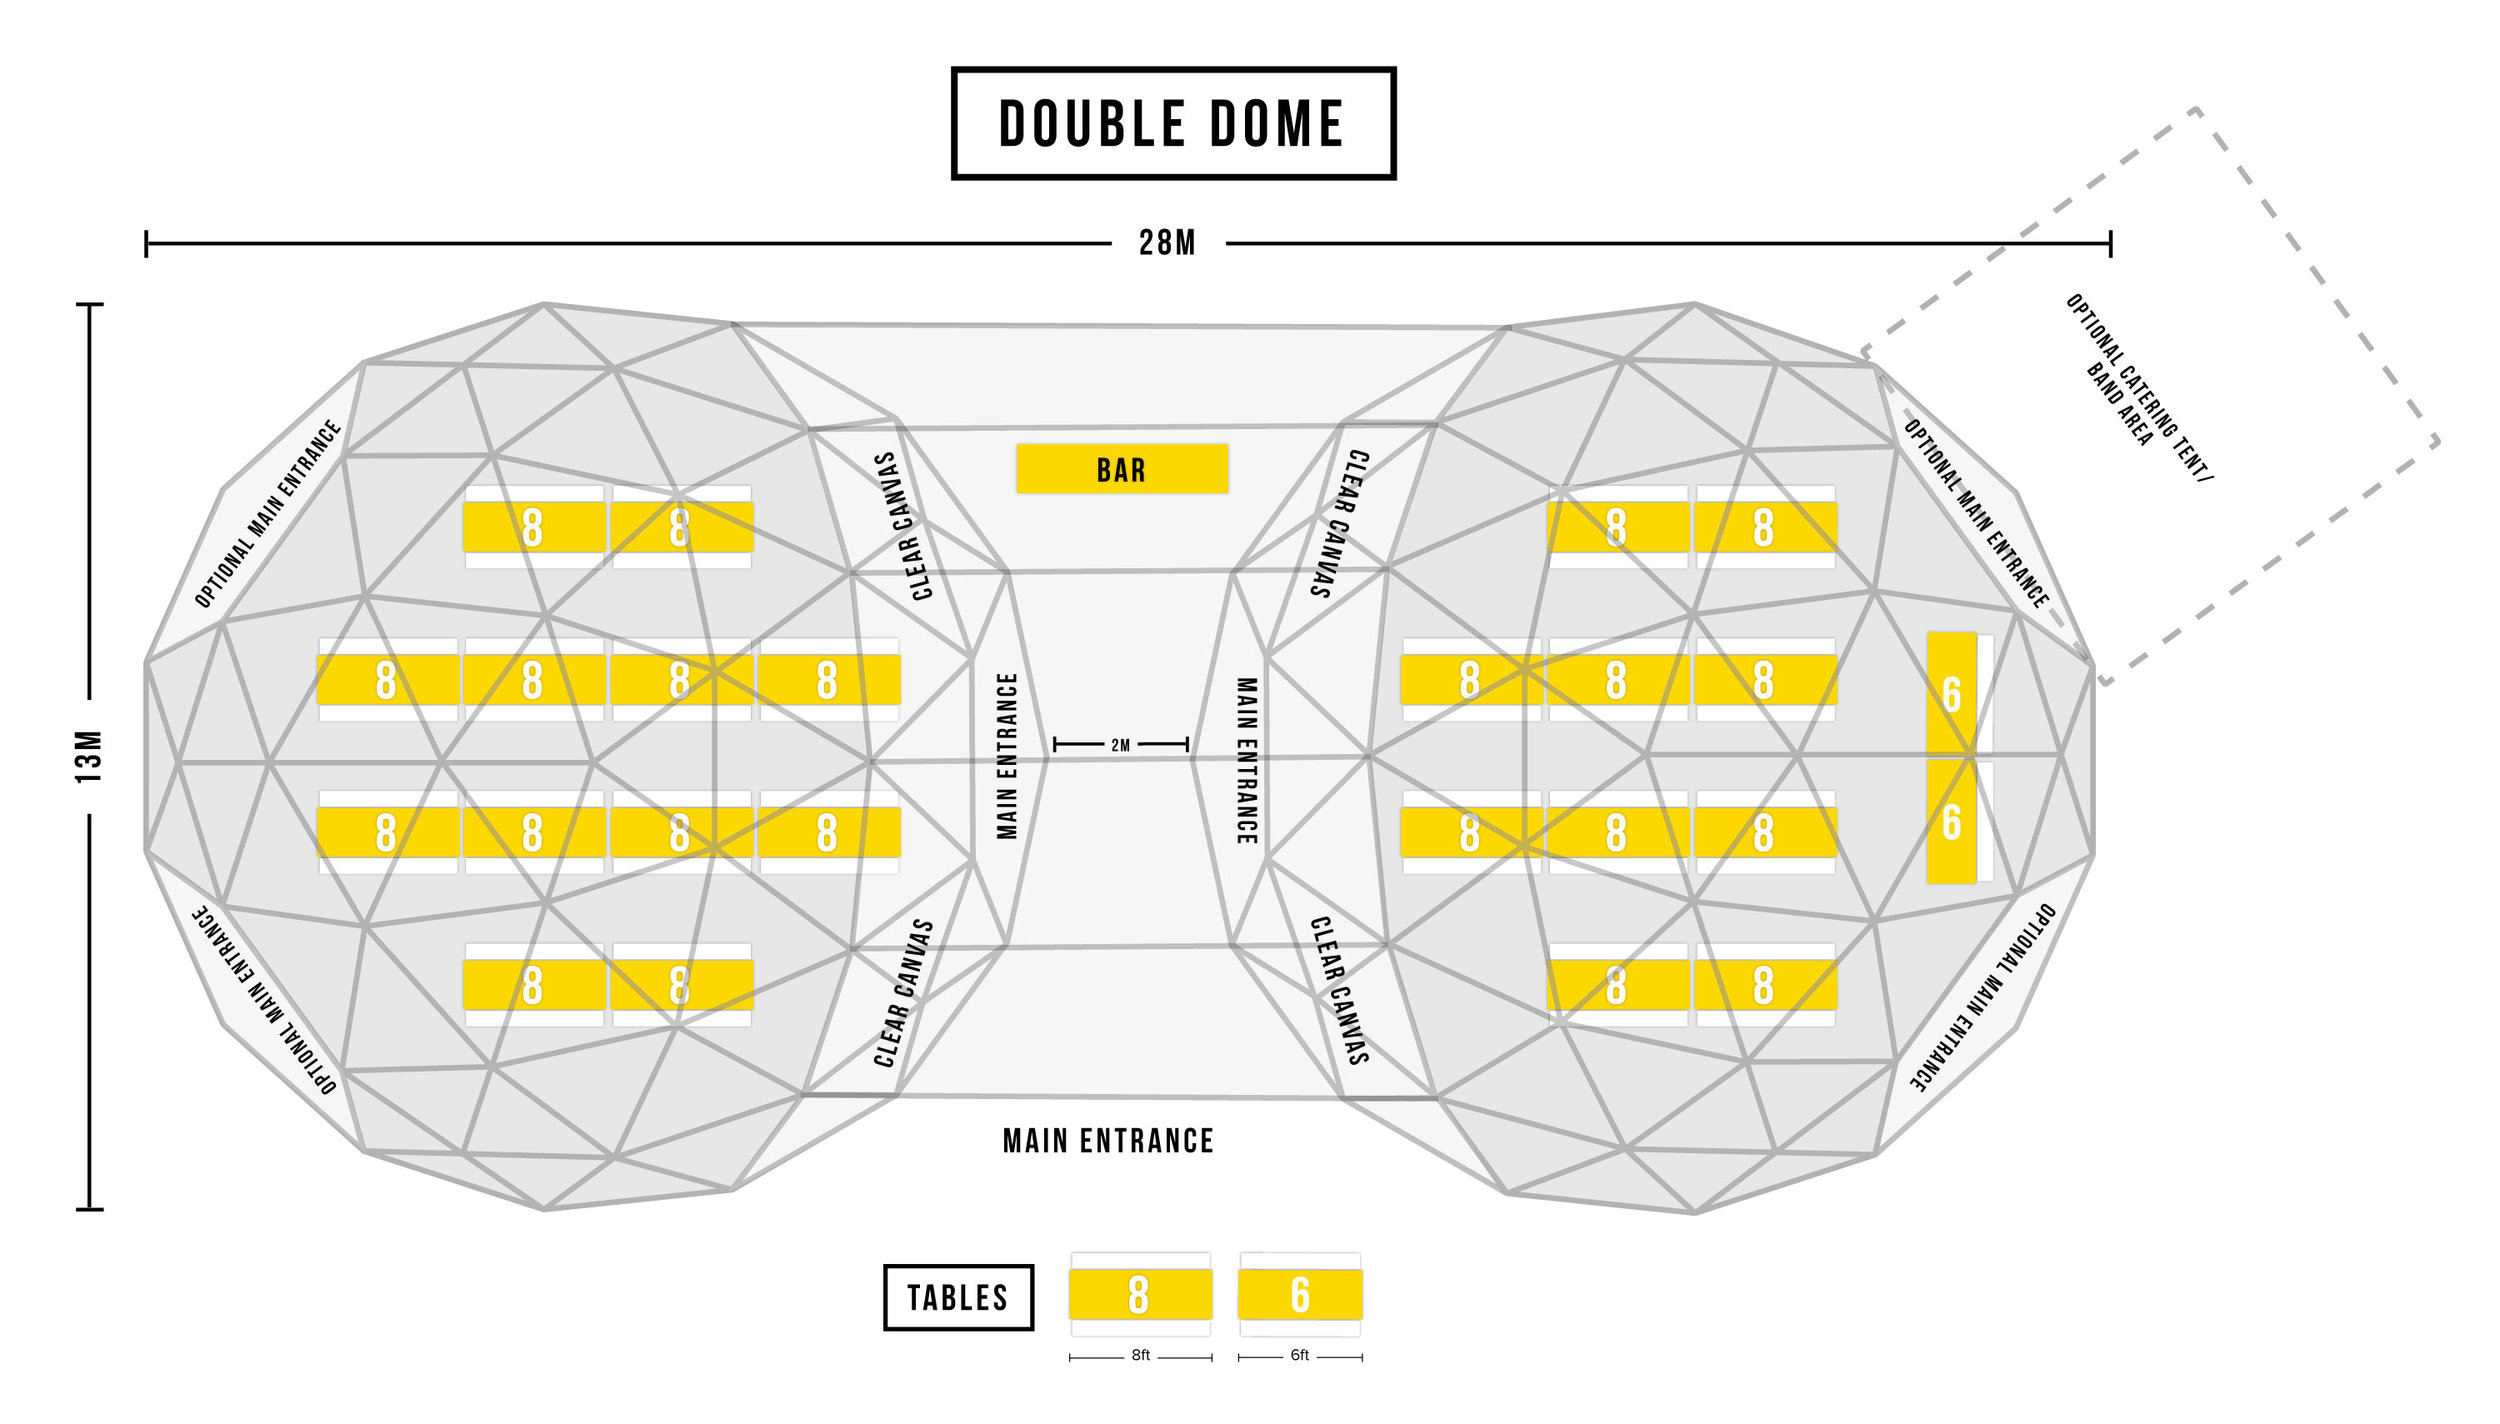 double dome floorplan